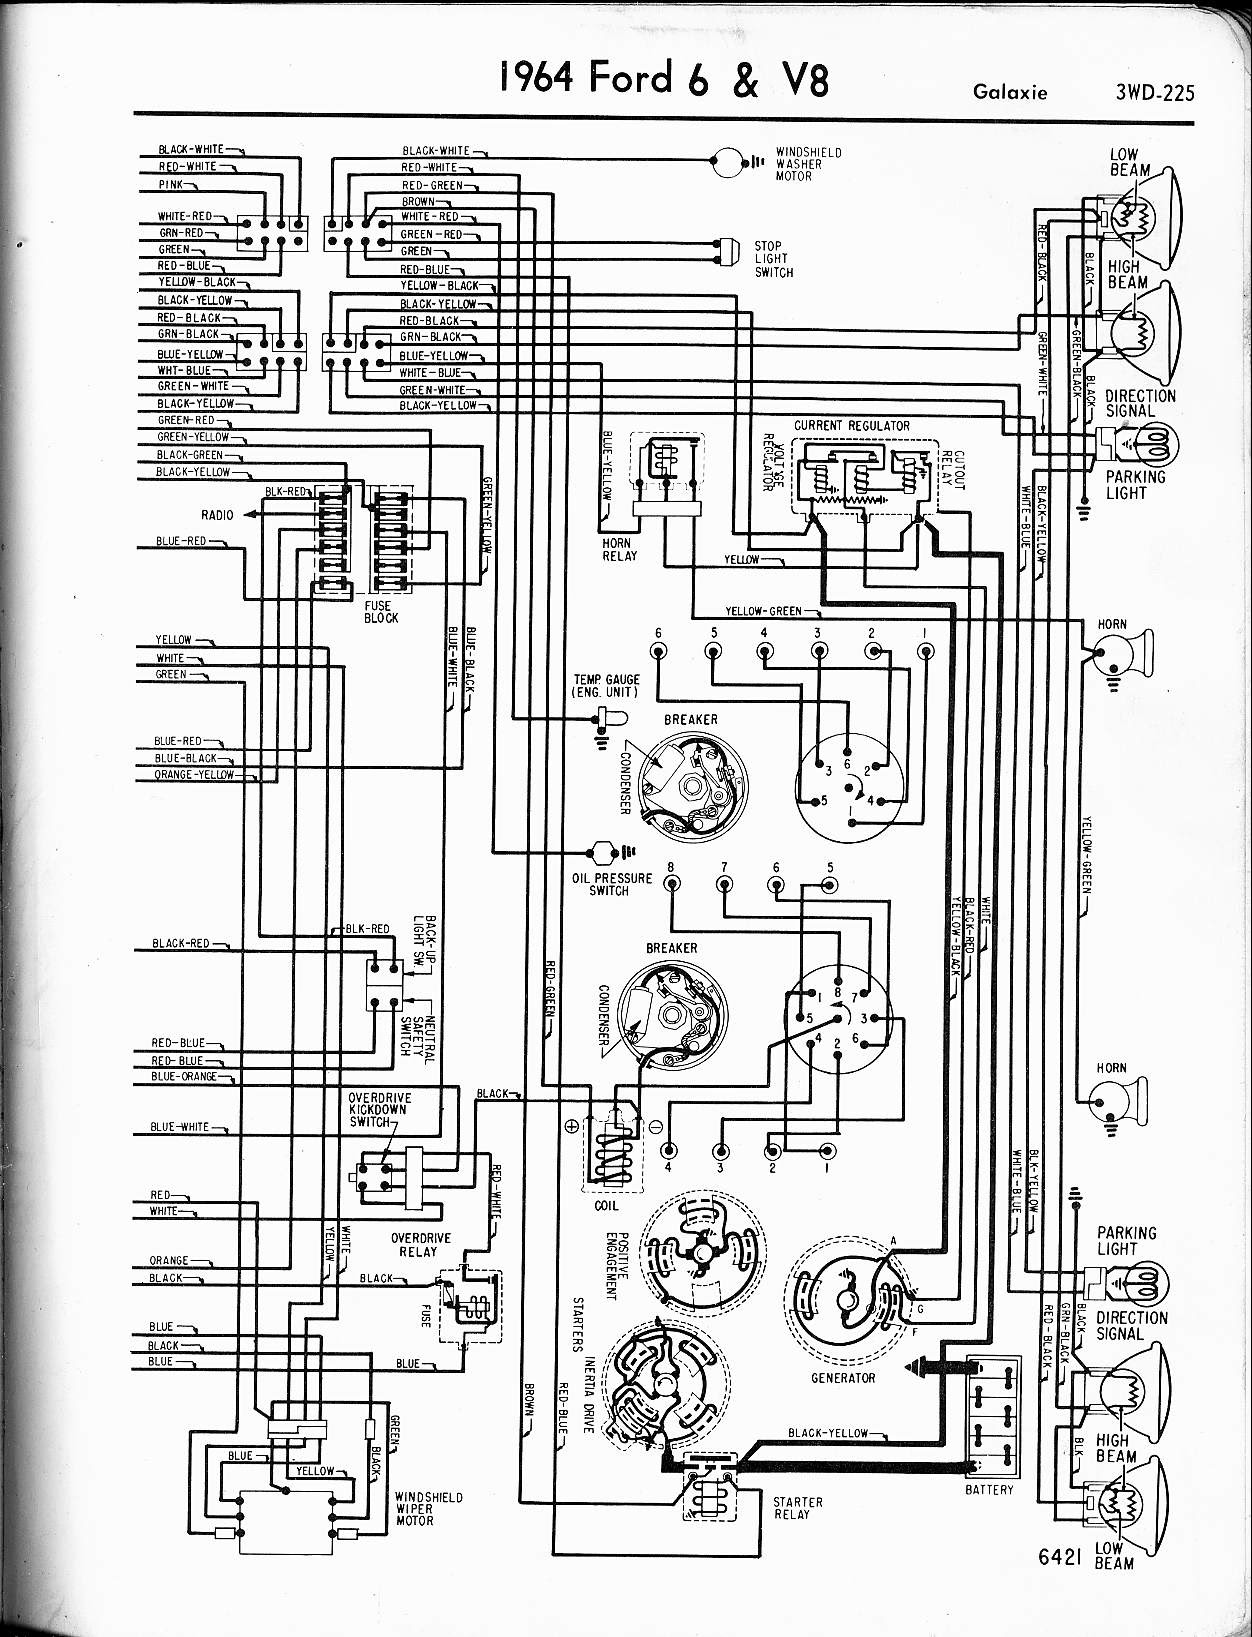 Central Locking Wiring Diagram Ford Galaxy One Line Electrical Home Wiring Diagrams Basic Wiring Losdol2 Jeanjaures37 Fr